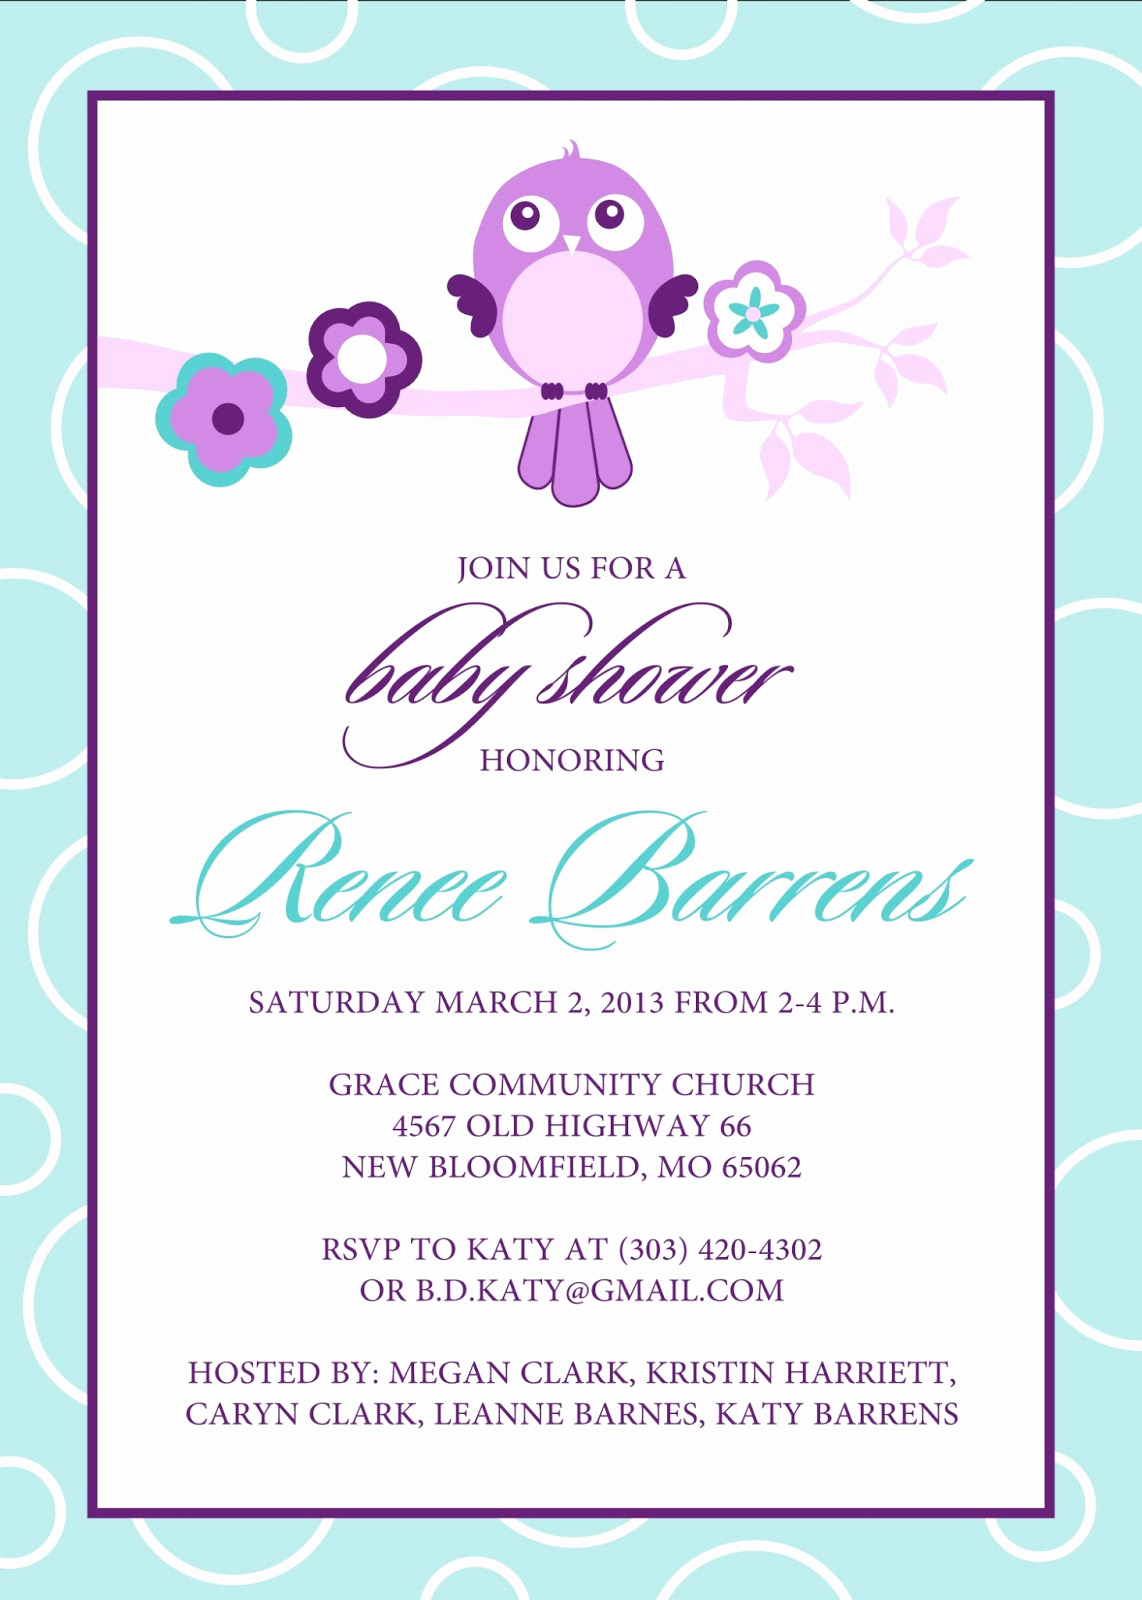 Free Baby Shower Invitation Templates Luxury Baby Shower Invitations for Boys Free Templates